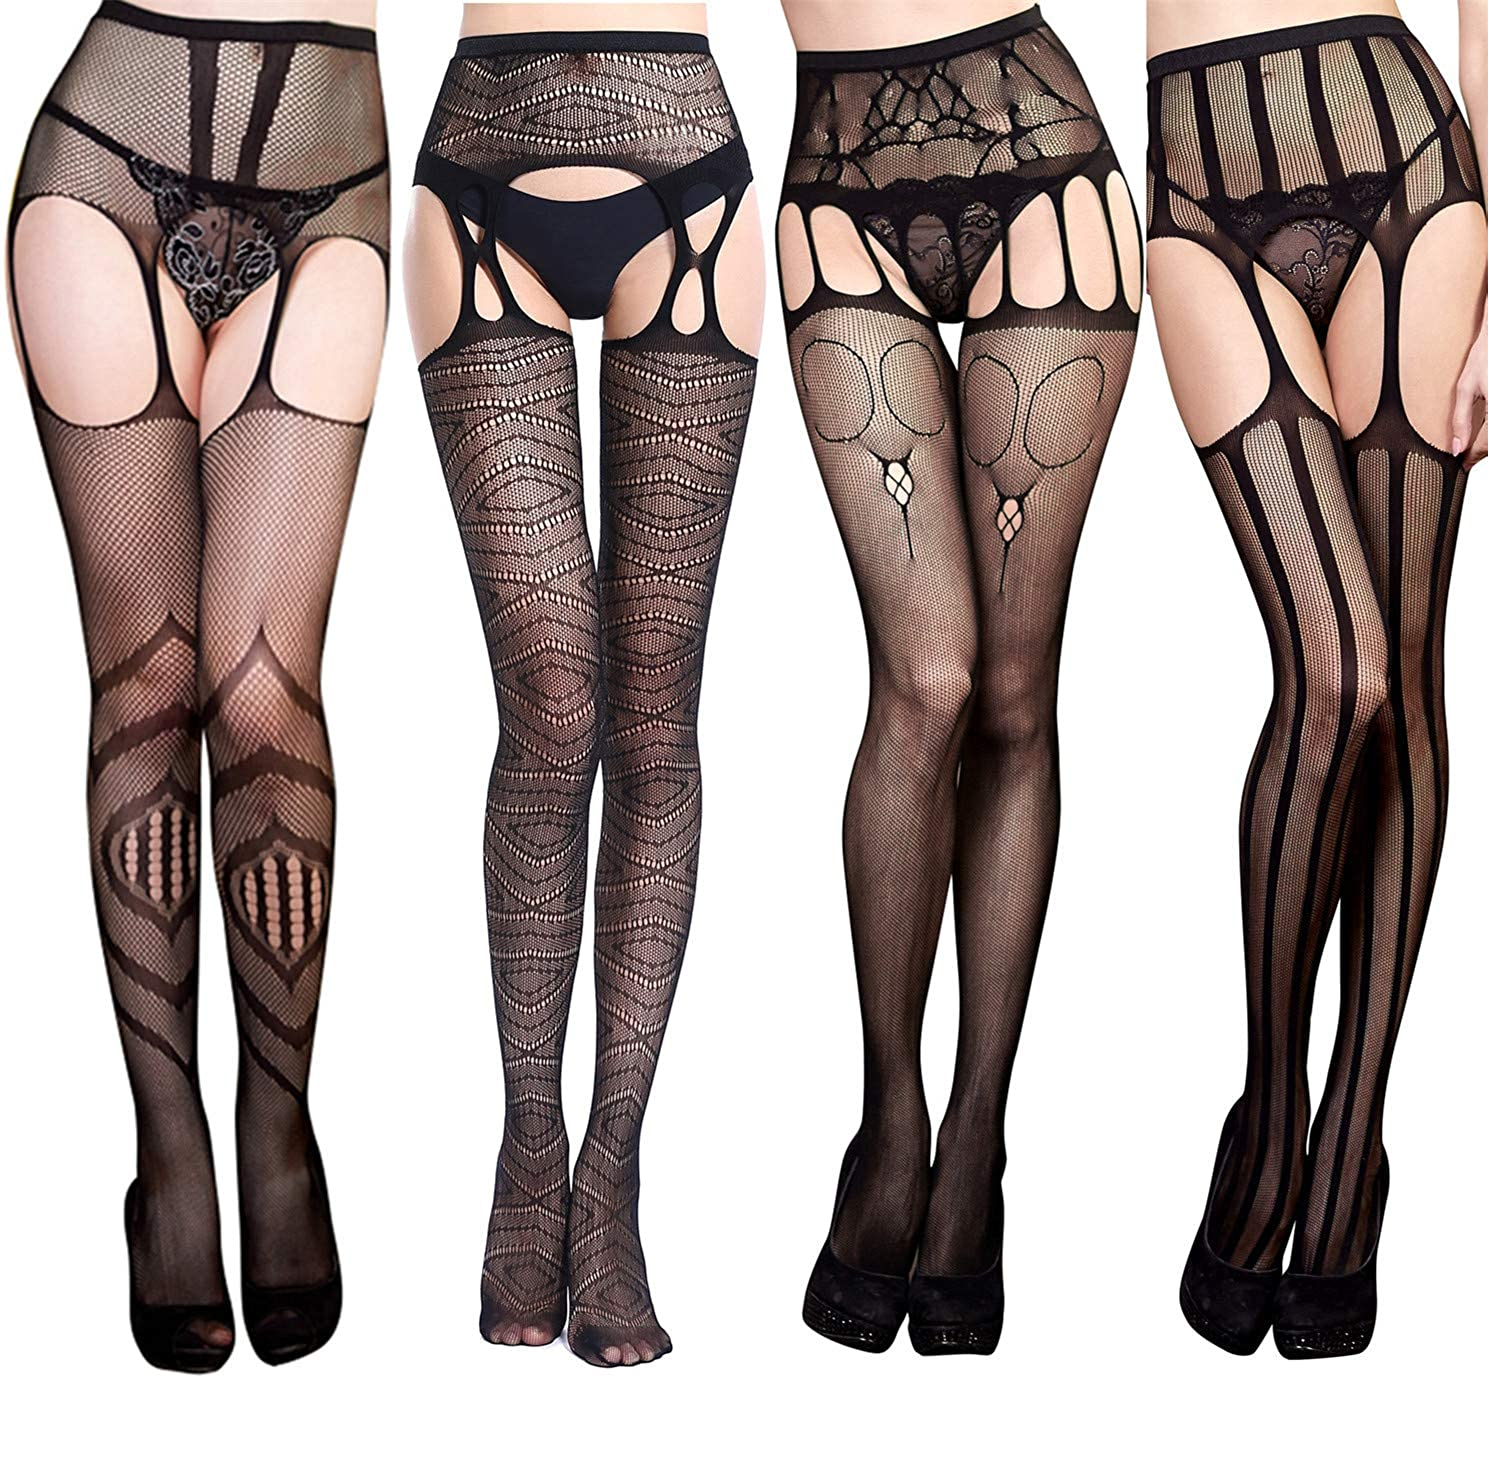 f91201b21a399f Top3: TGD Womens Black Thigh High Stockings Sexy Fishnet Lace Tights  Suspender Pantyhose Stretchy 4 Pairs